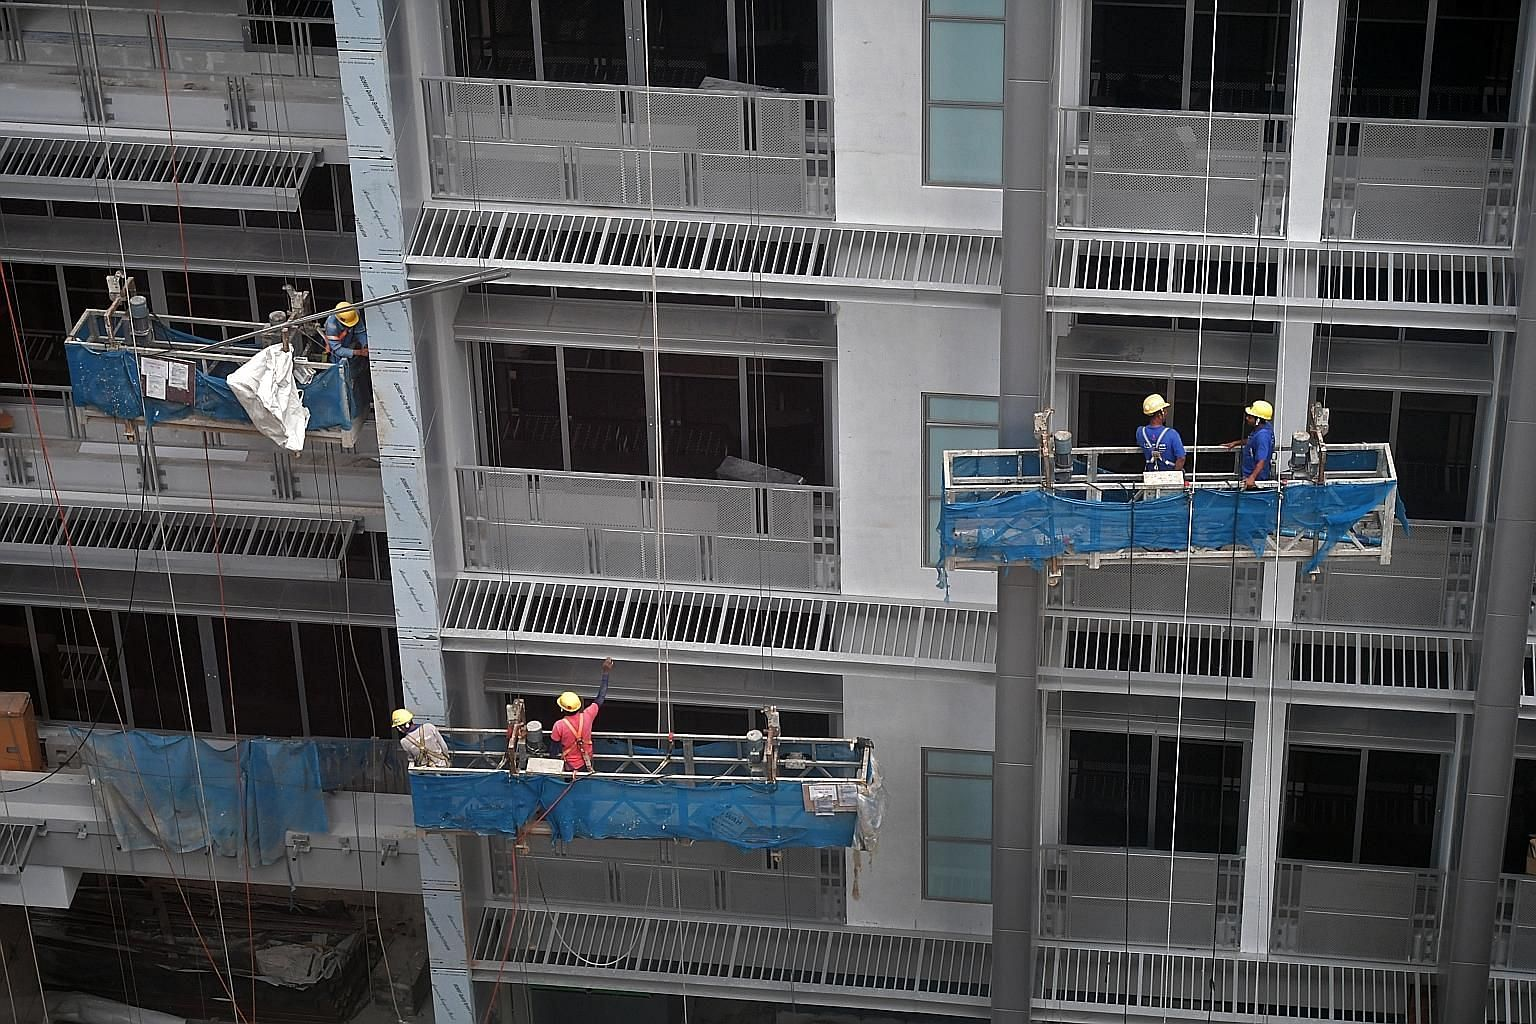 Last year, other than fatalities, 41 per cent of major injuries and 32 per cent of minor injuries in Singapore were caused by falls. The majority of the falls from height cases were in higher-risk sectors such as construction and marine, while slips,